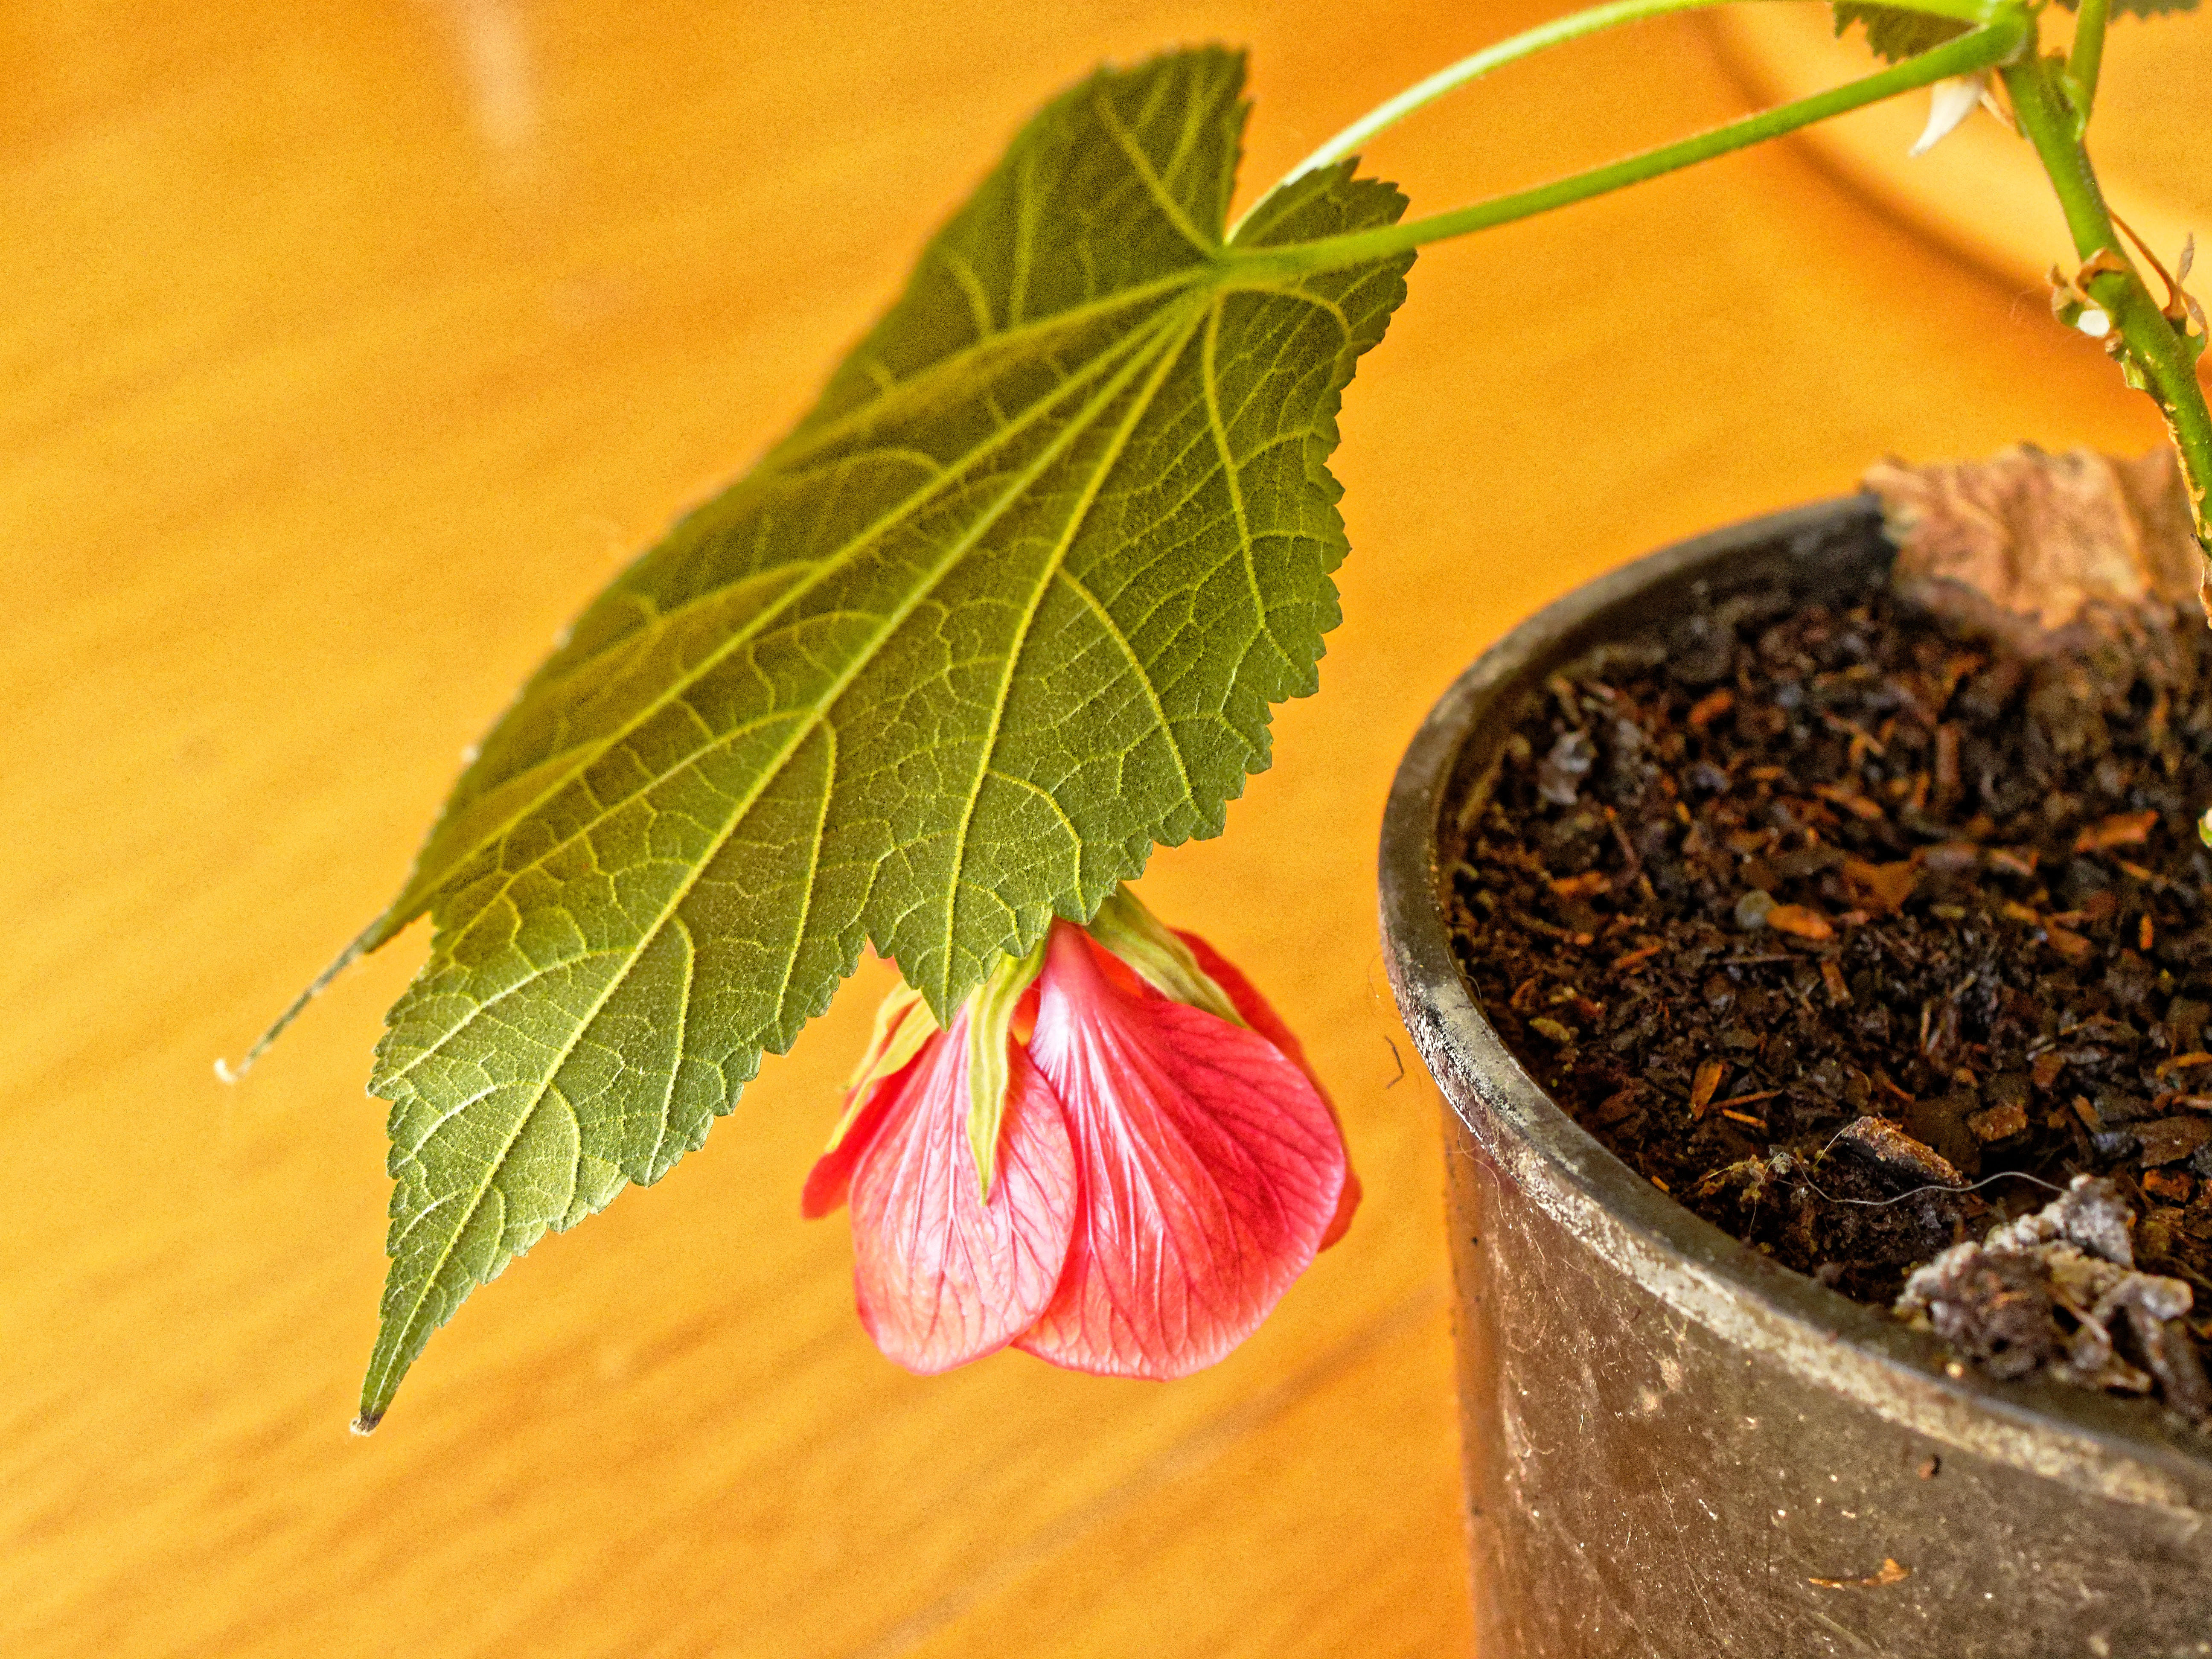 This should be Abutilon-3.jpeg.  Is it missing?